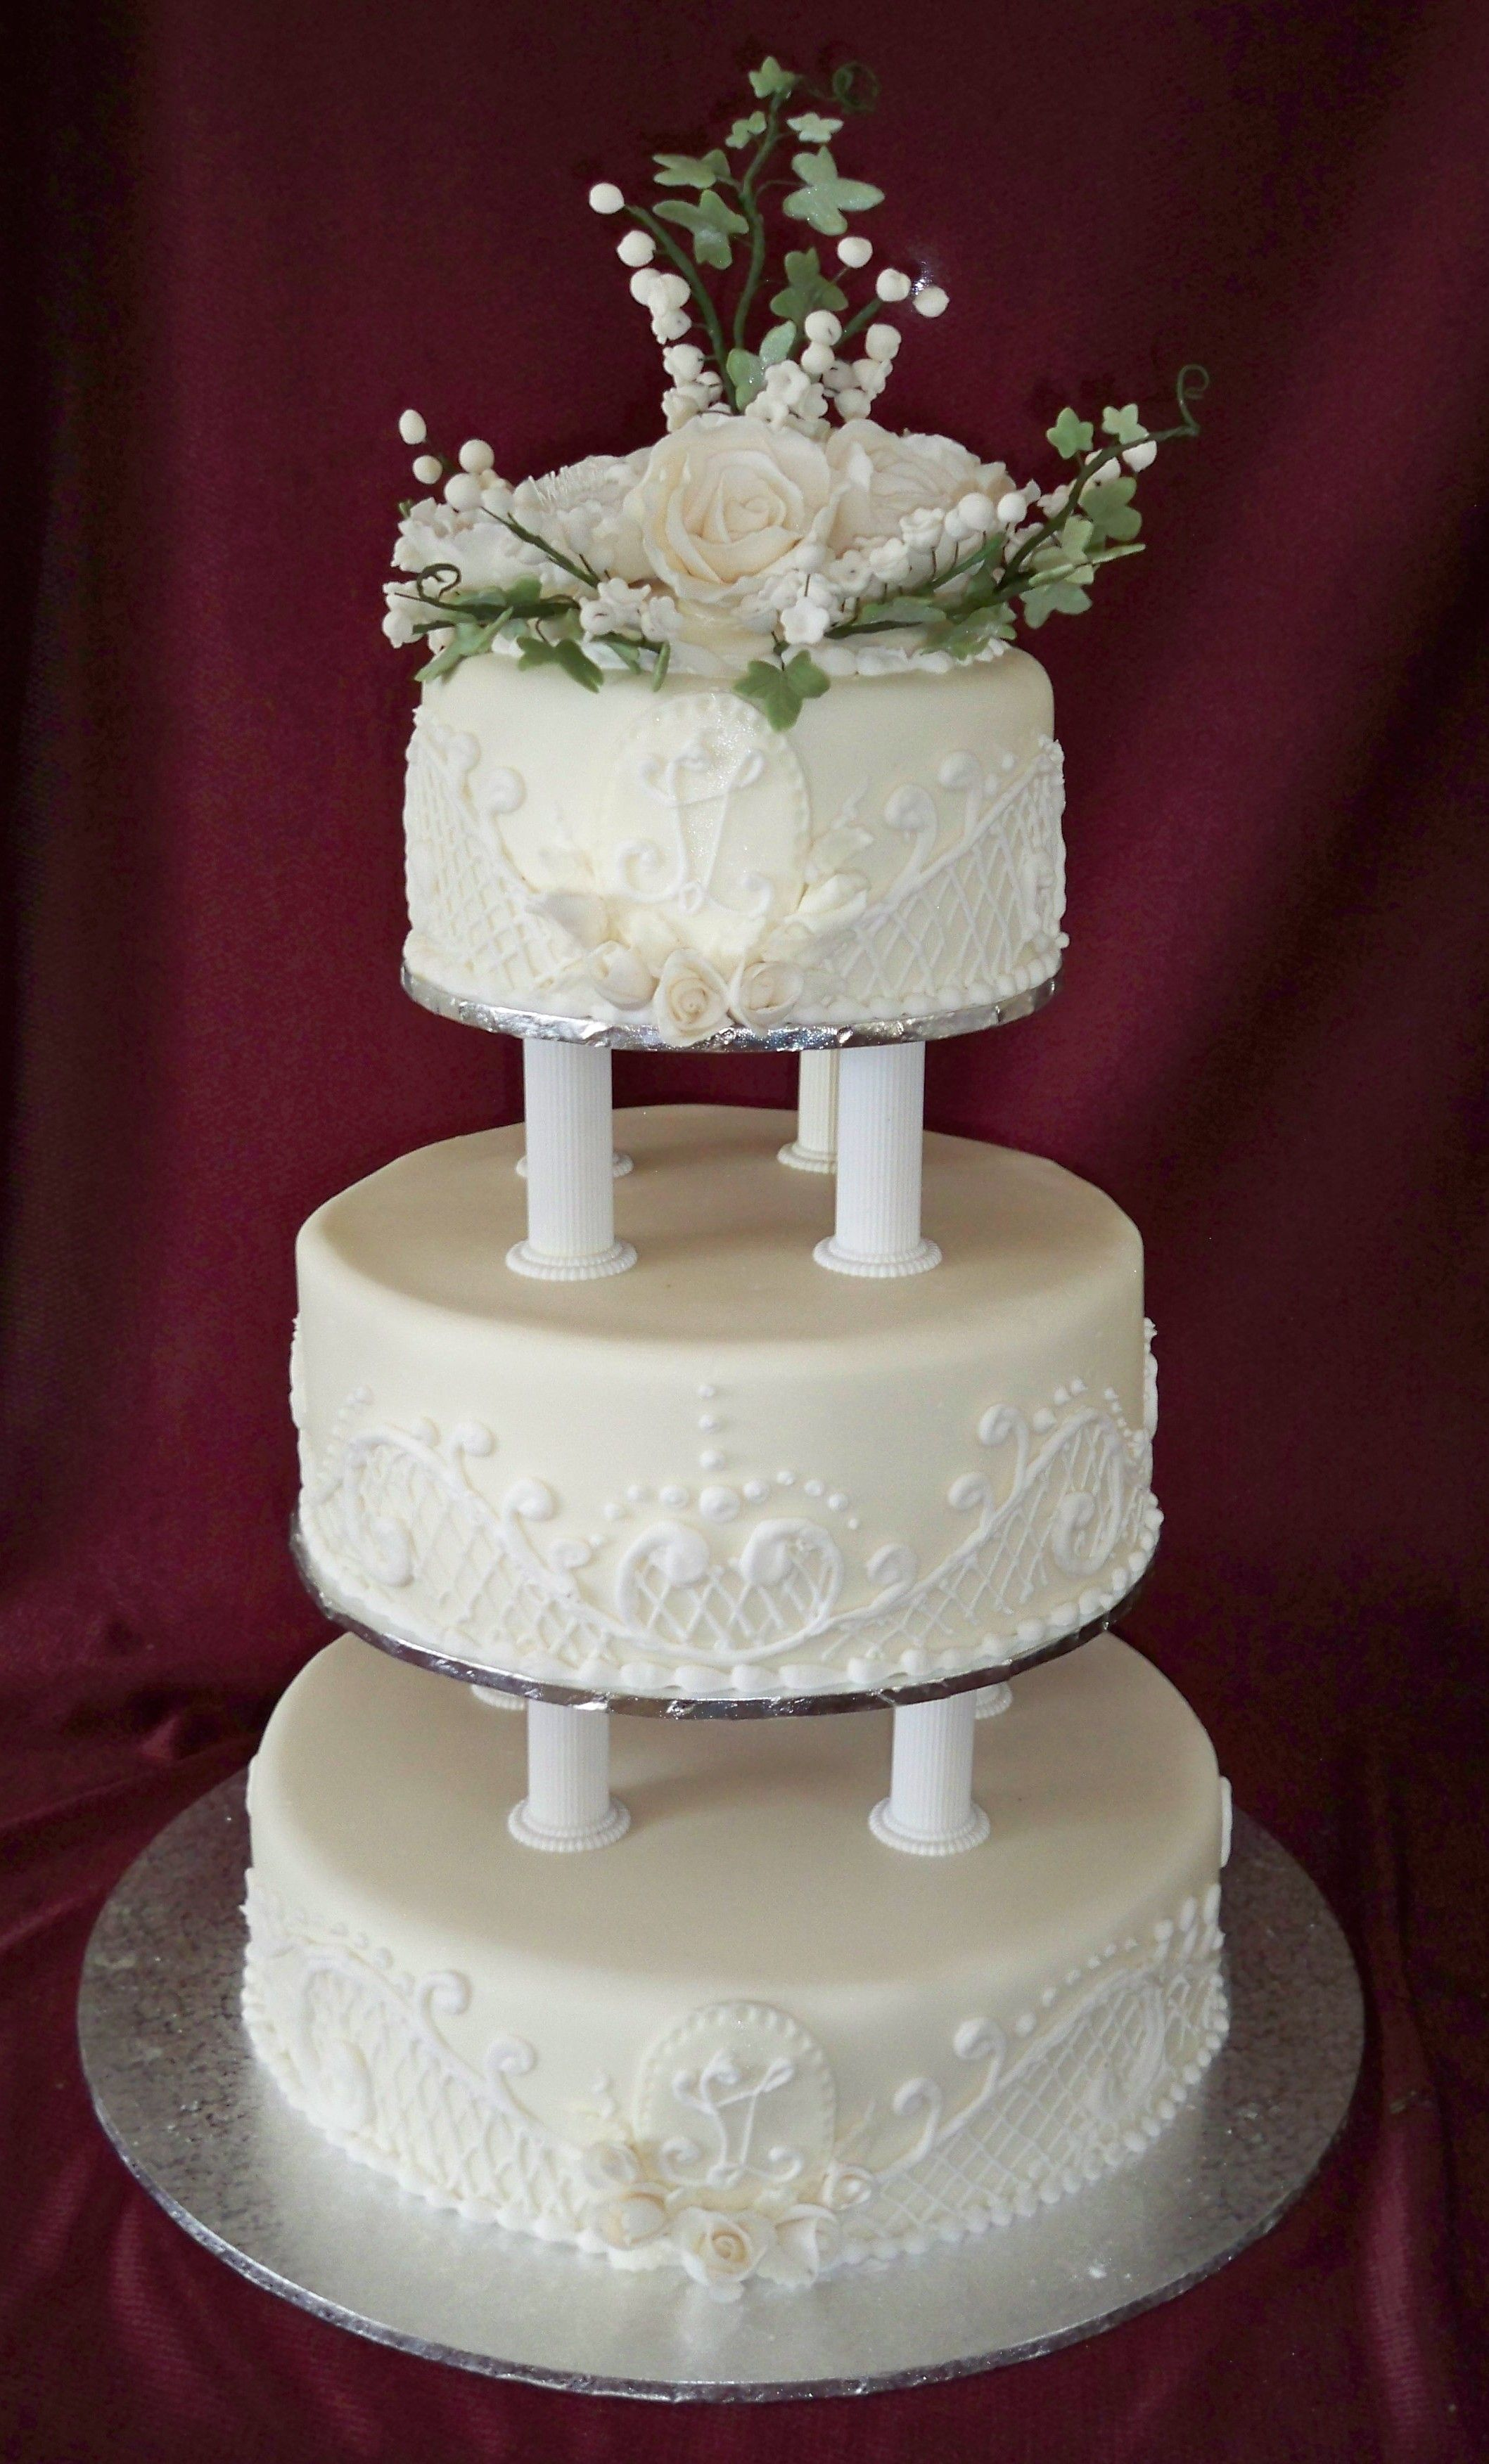 3 tier round wedding cake with 4 Roman columns supporting third